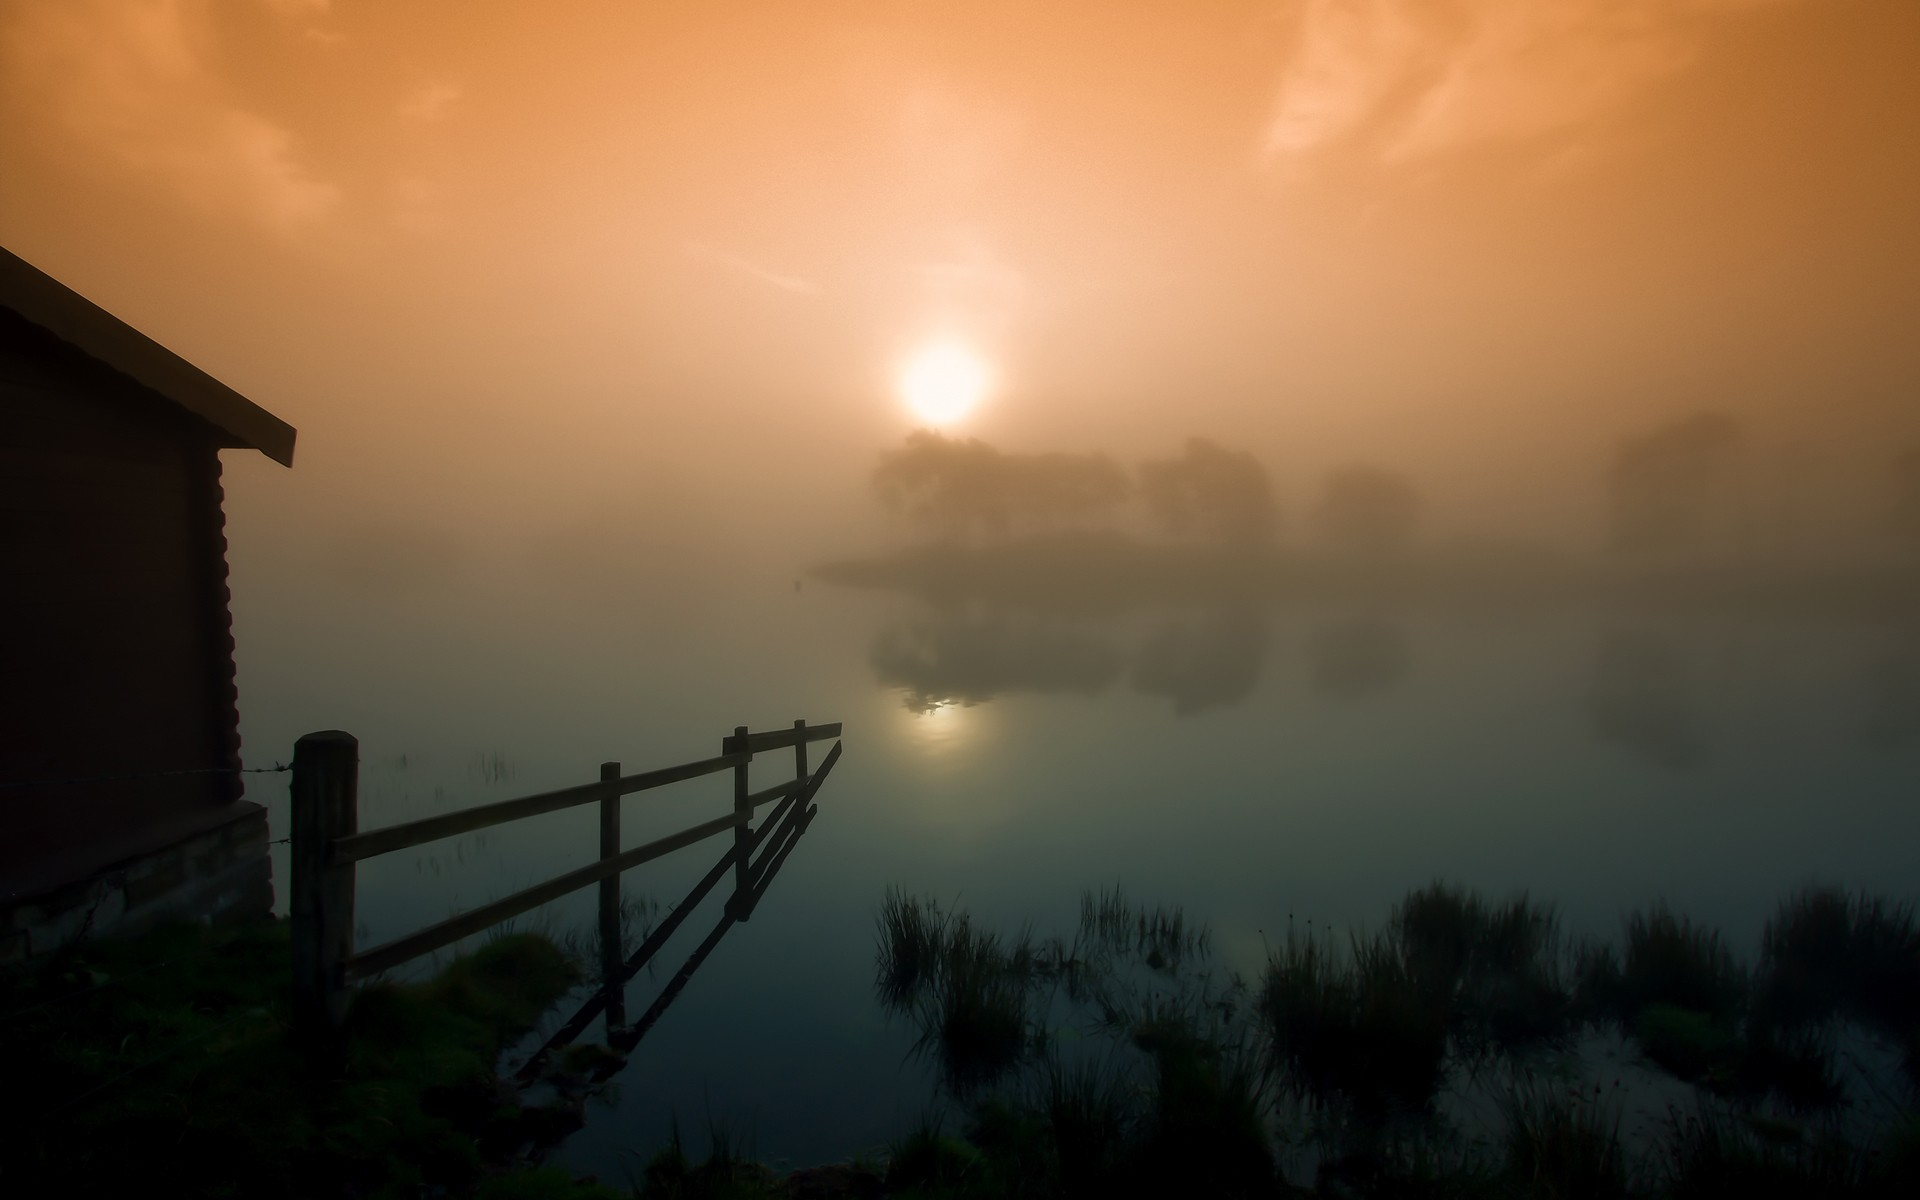 Deep Wallpaper Quotes Daily Wallpaper Foggy Morning I Like To Waste My Time